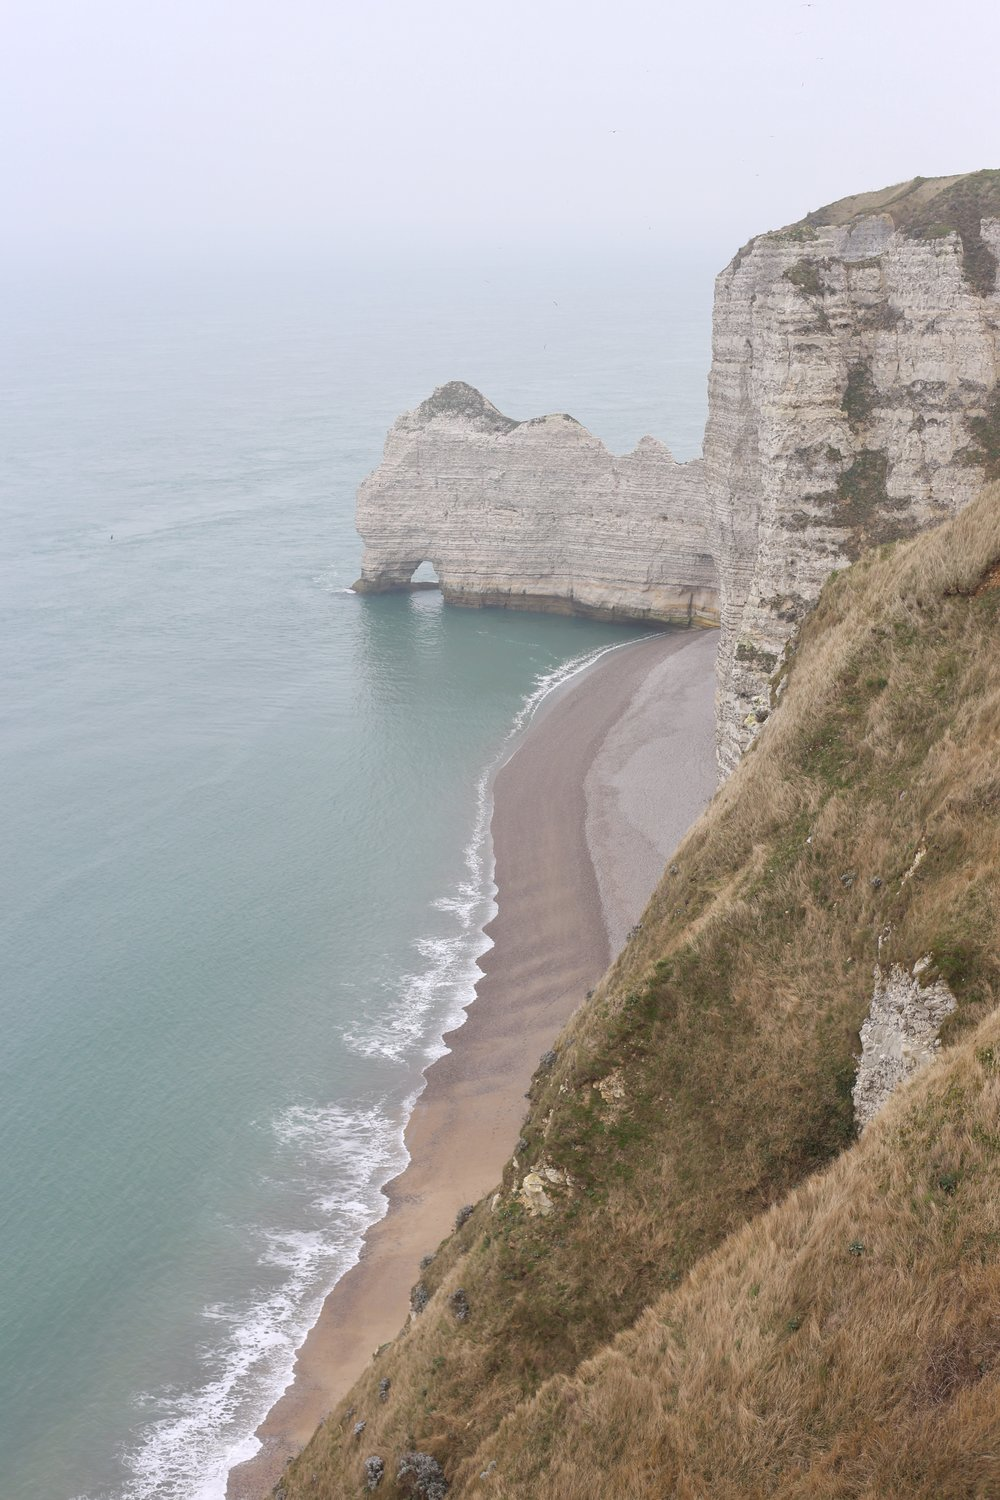 Falaises d'Étretat - the white cliffs of Etretat by the blue sea, France.